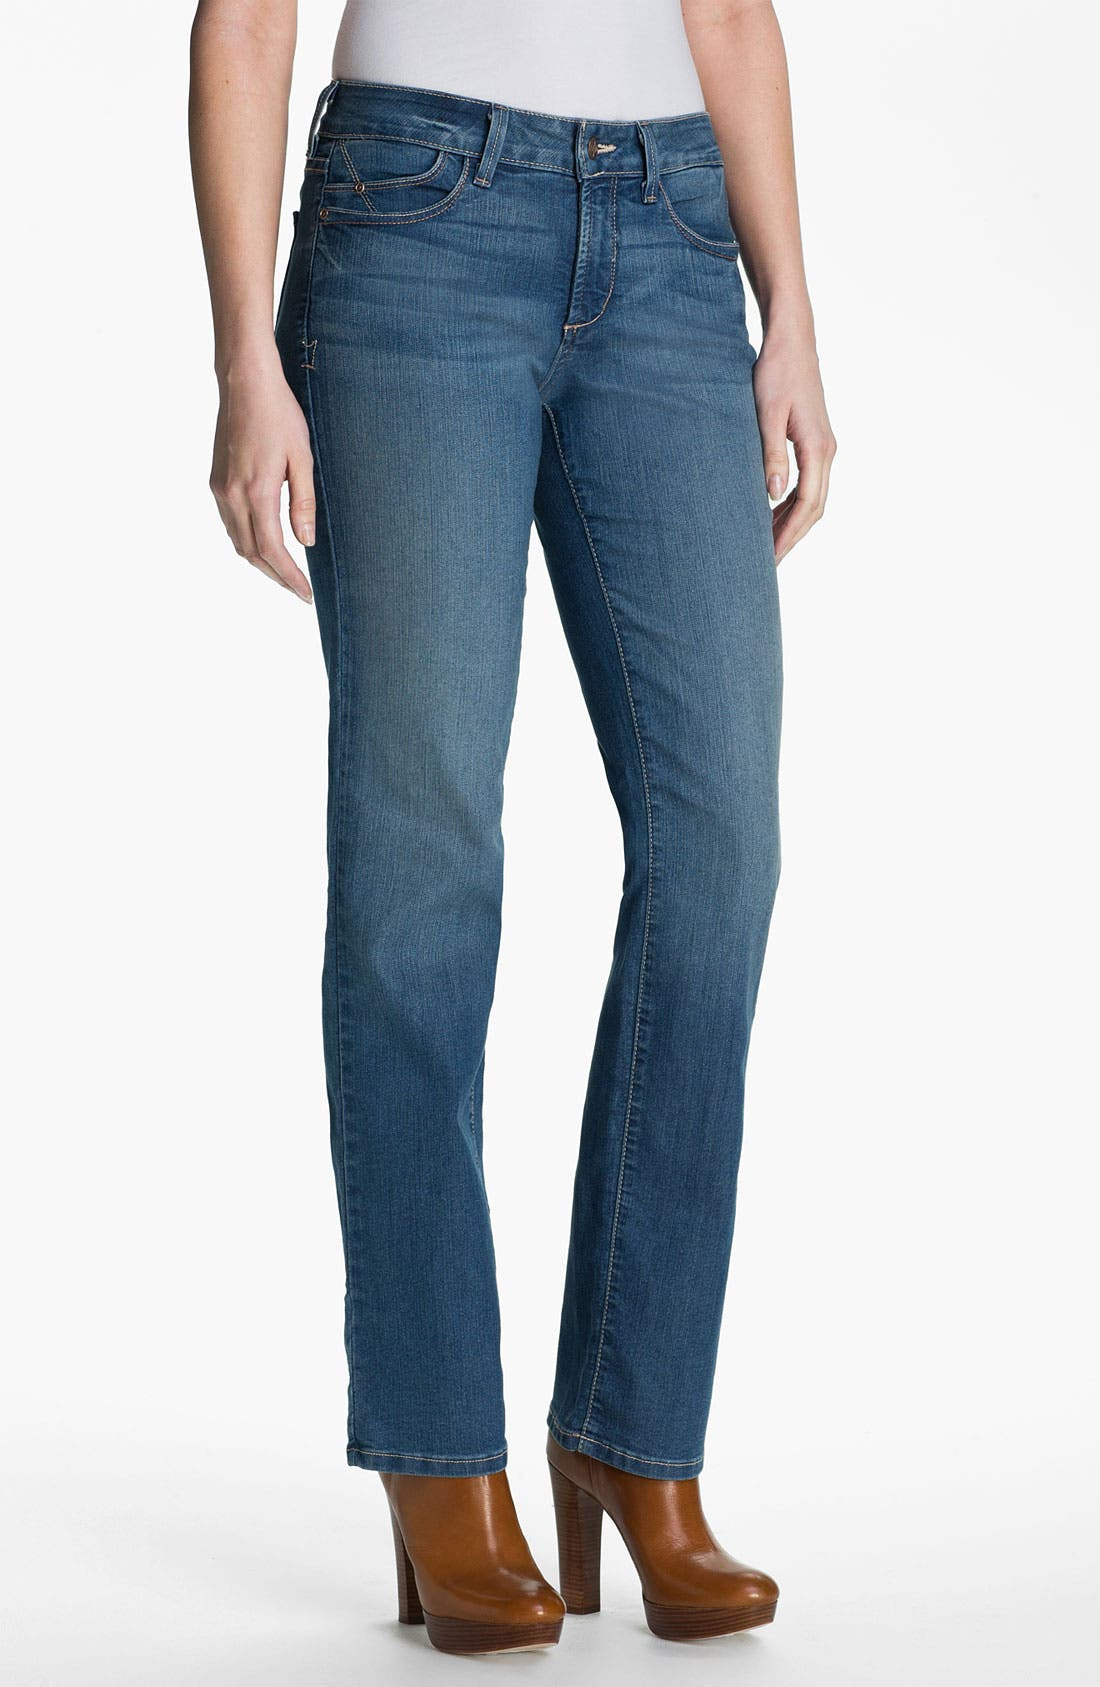 Alternate Image 1 Selected - NYDJ 'Marilyn' Stretch Straight Leg Jeans (Miami)